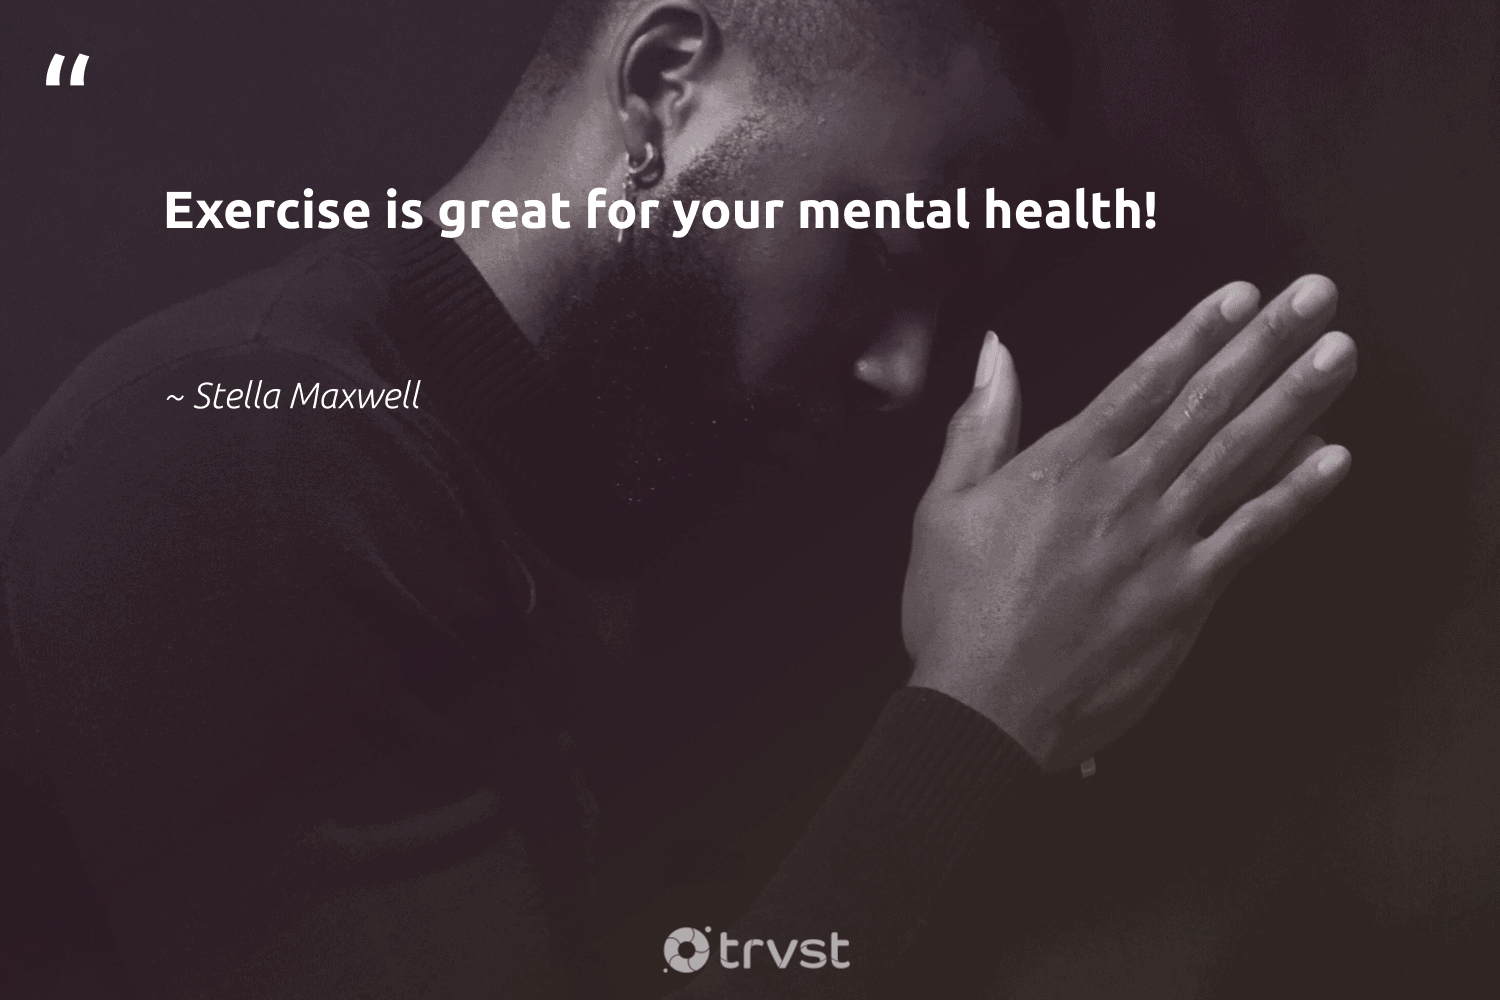 """Exercise is great for your mental health!""  - Stella Maxwell #trvst #quotes #fitness #exercise #health #begreat #collectiveaction #fitnessgoals #mindset #togetherwecan #dotherightthing #bodypositive"